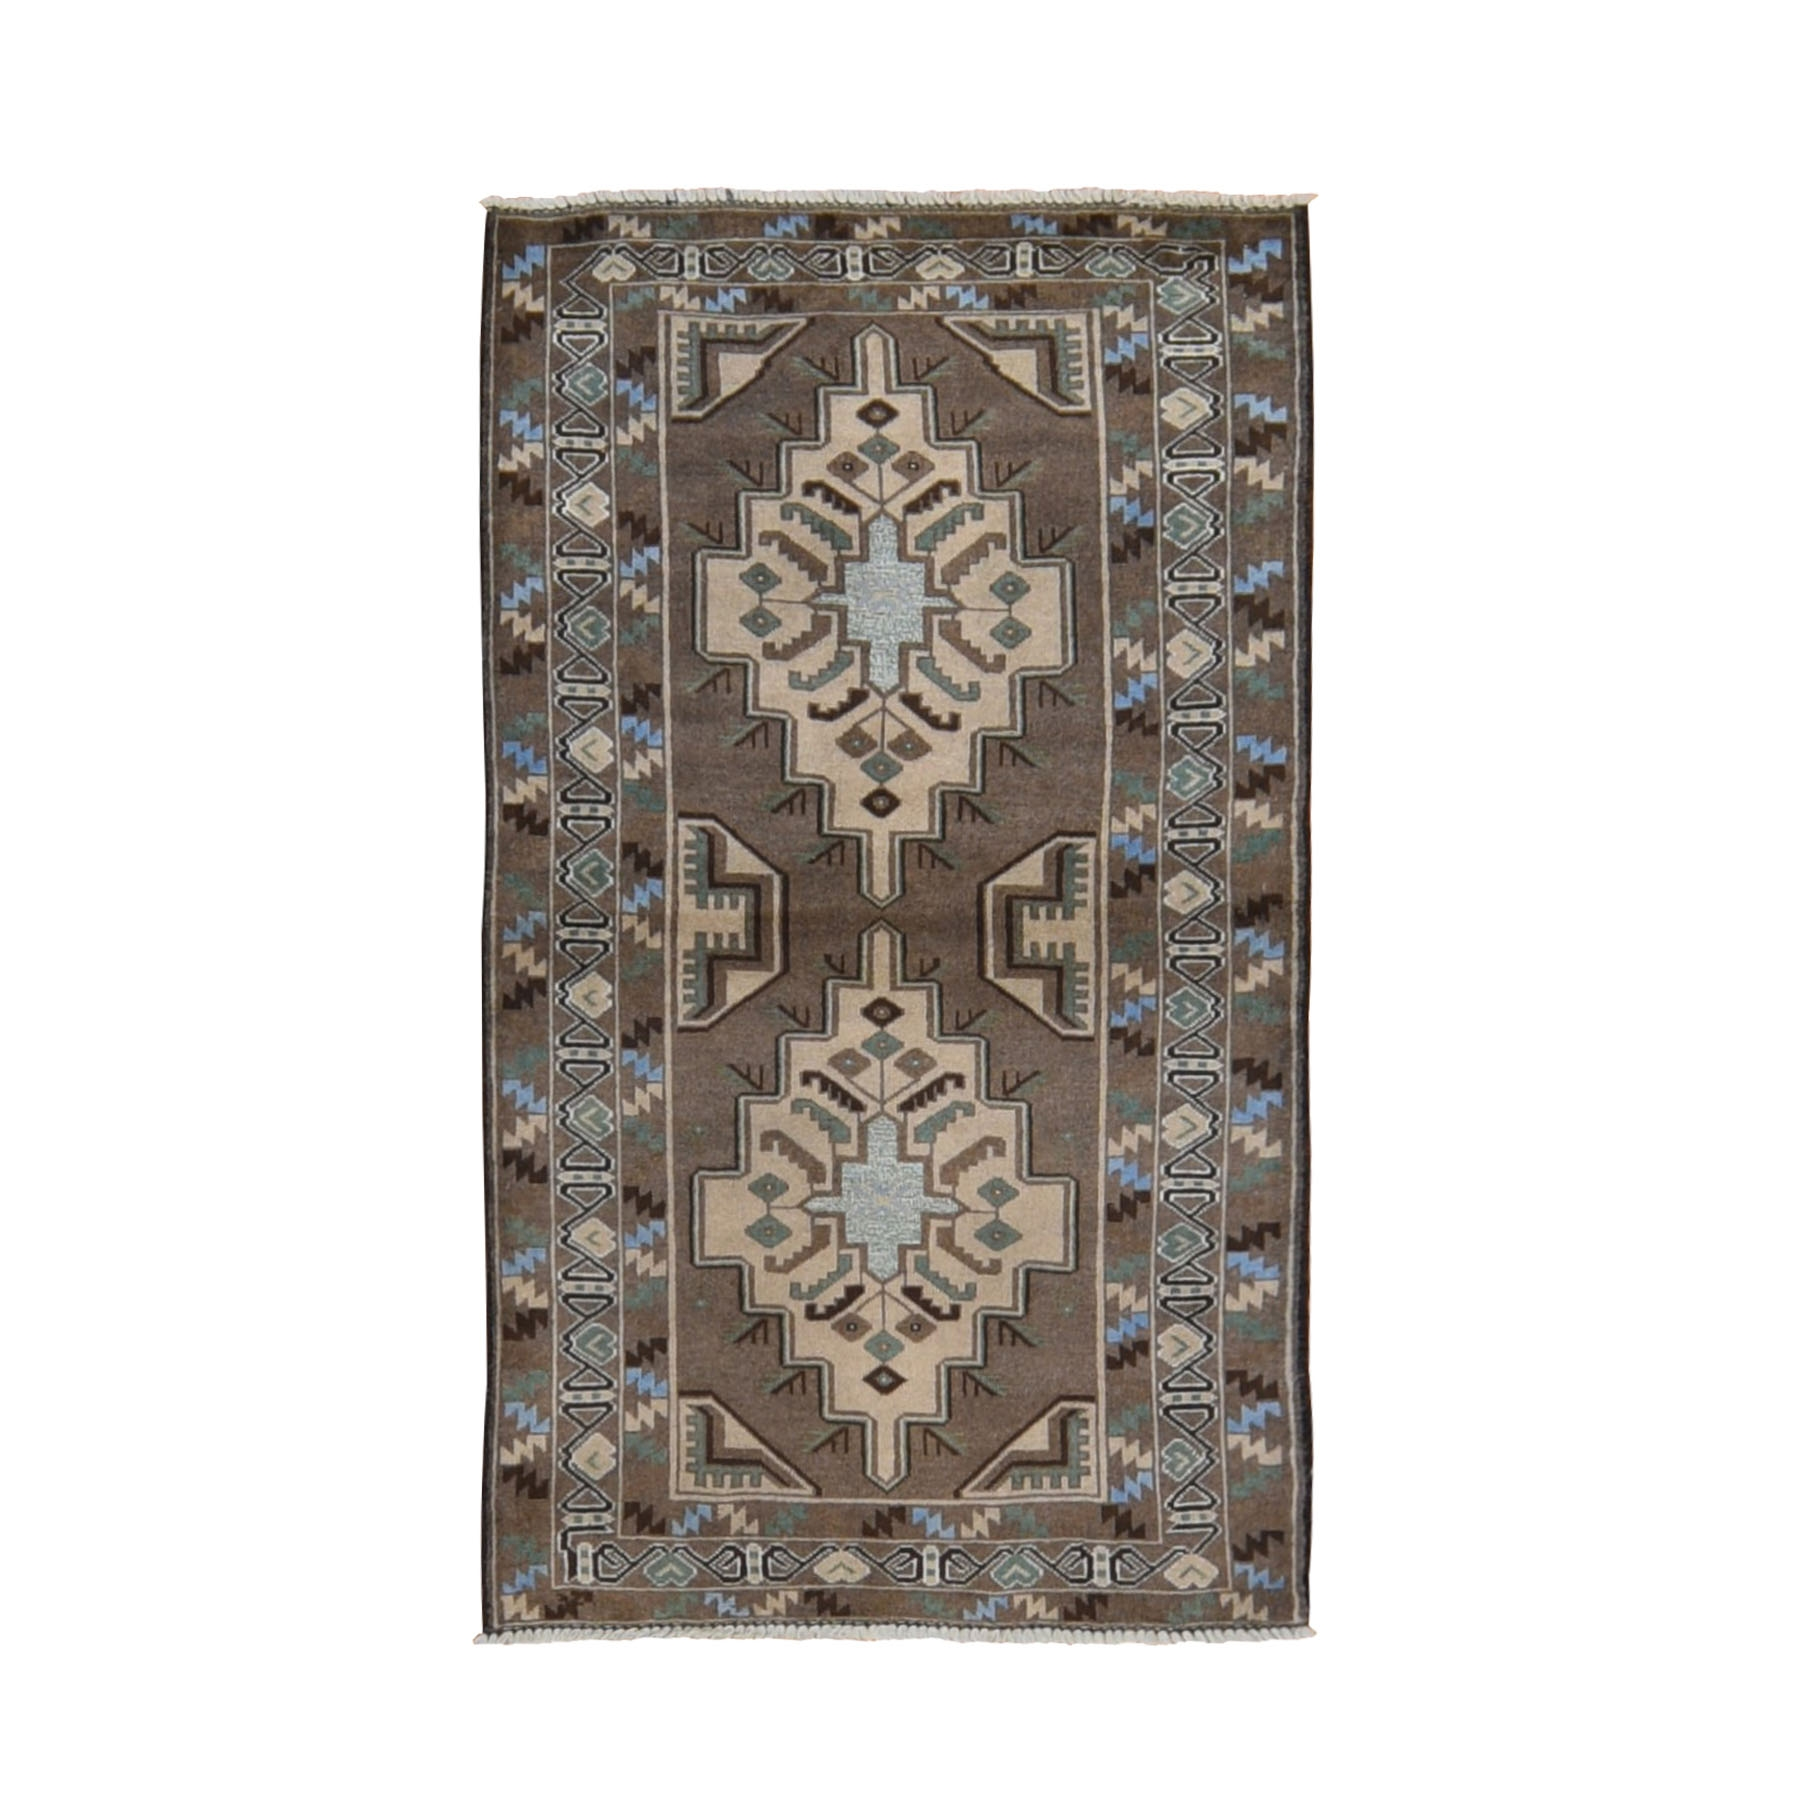 Nomadic And Village Collection Hand Knotted Brown Rug No: 0198592